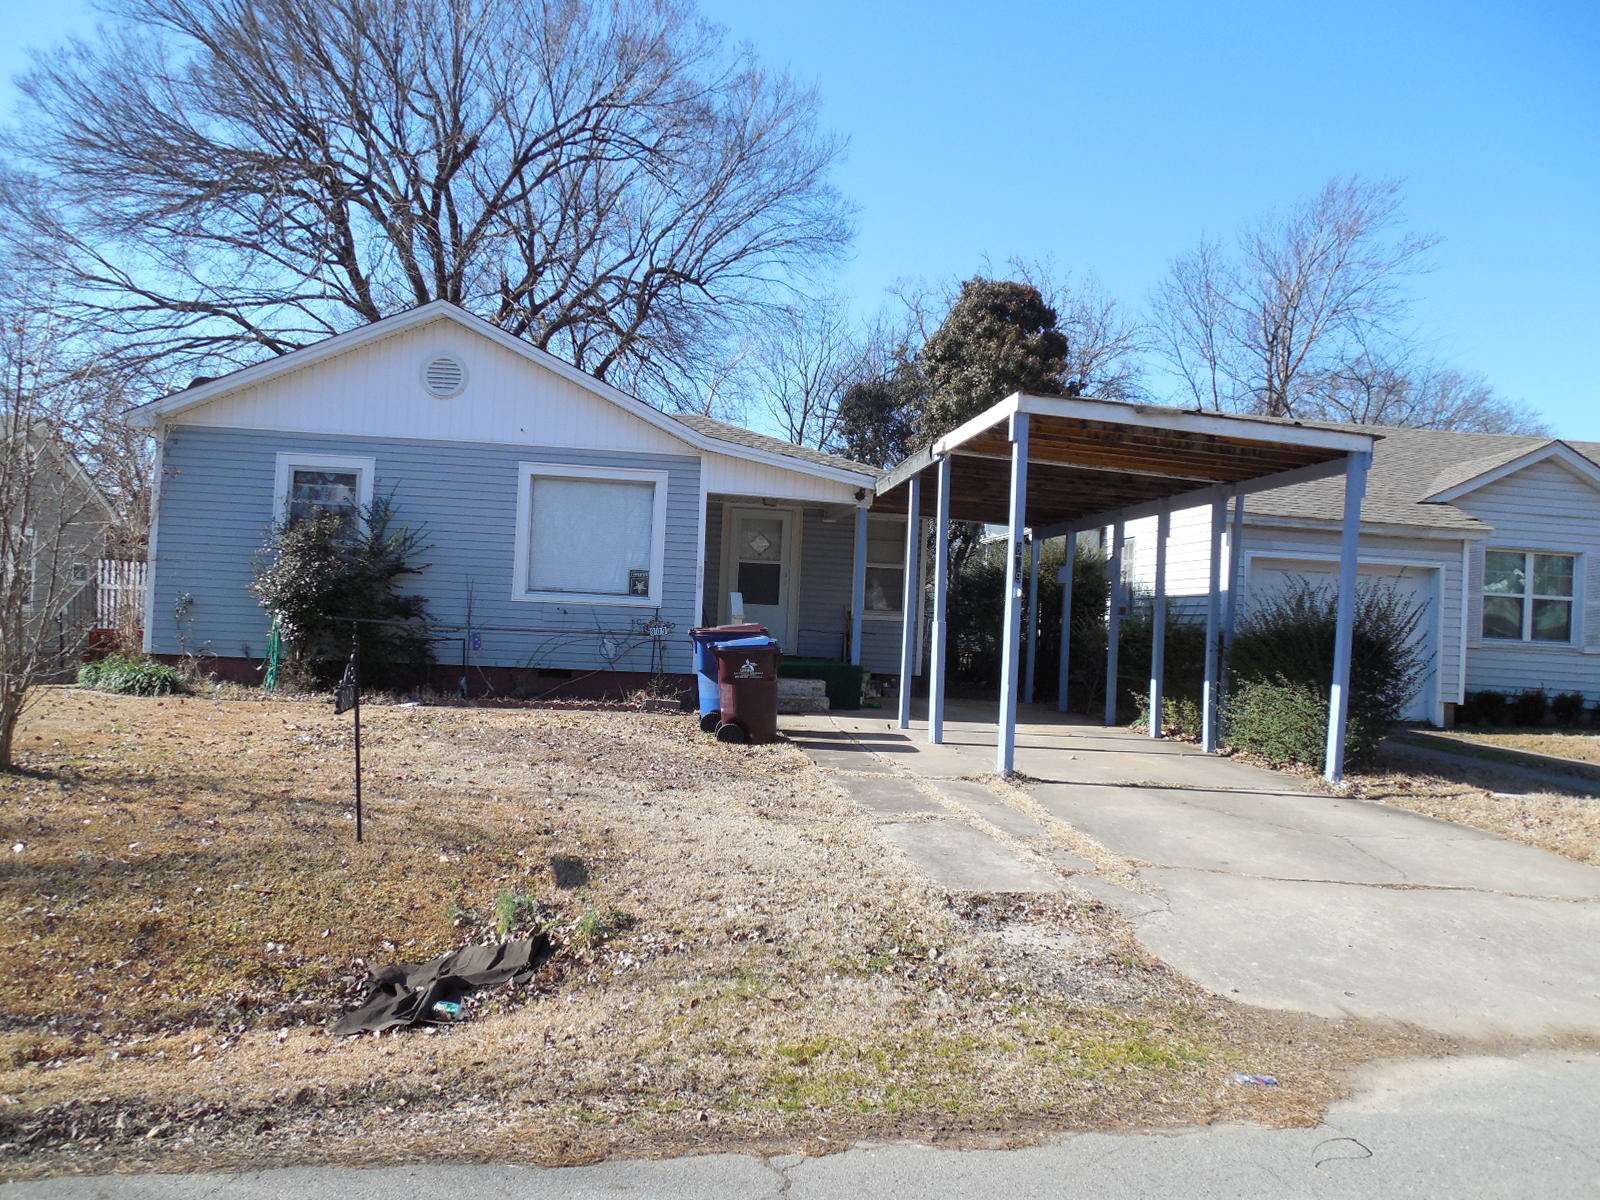 809 No. 45th St., Fort Smith, Arkansas 72903